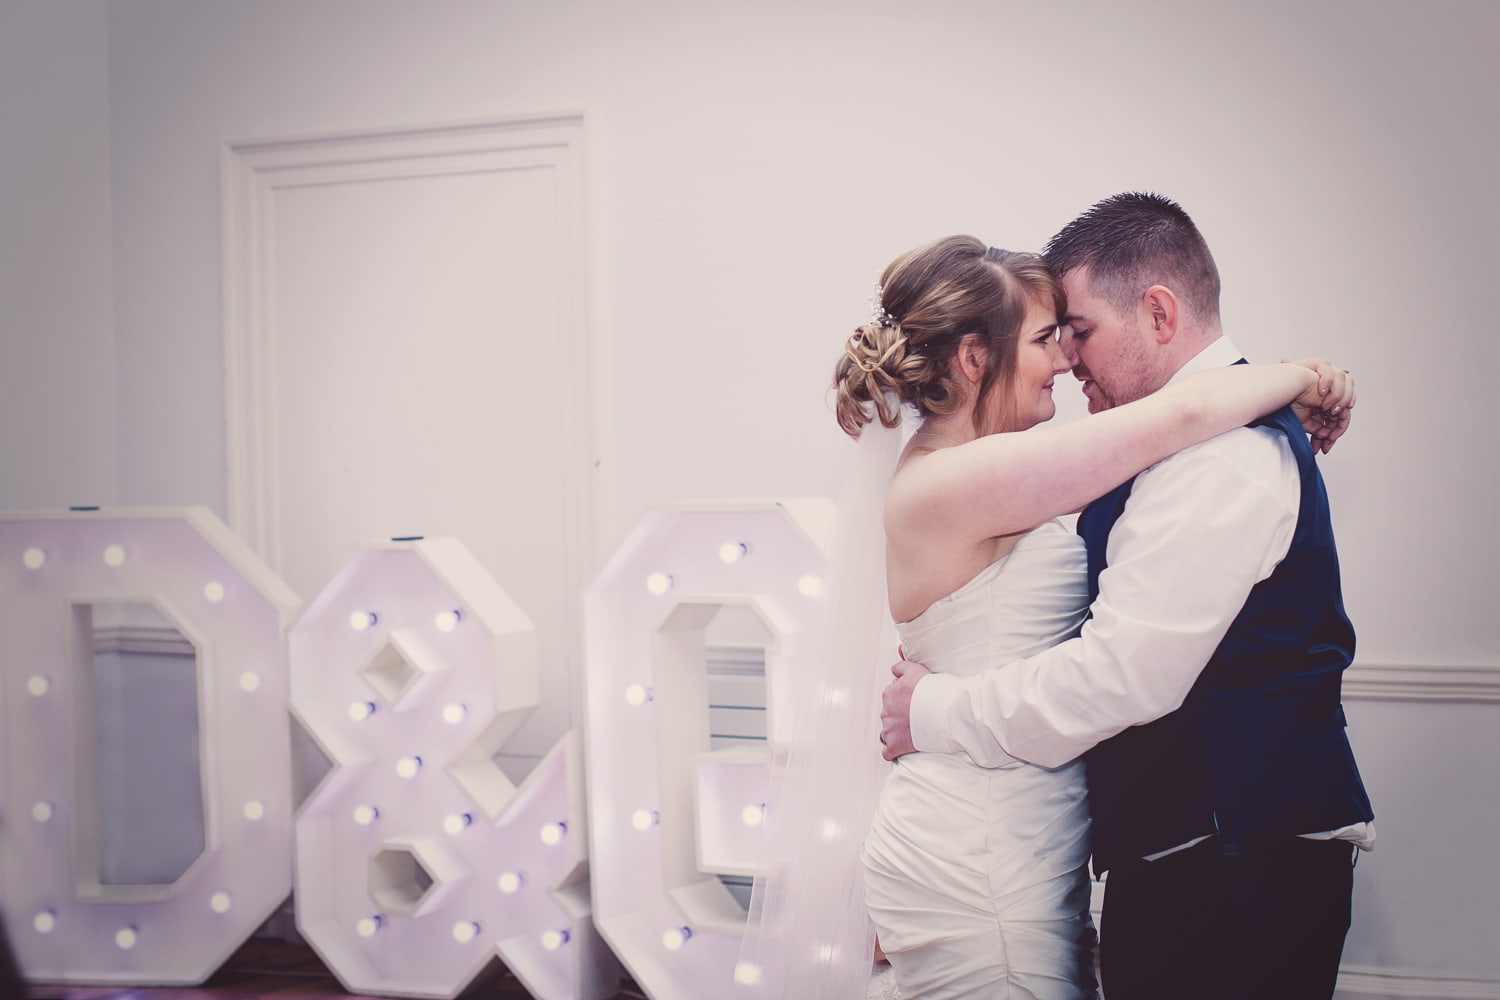 Hexham Abbey Wedding, first dance with letters